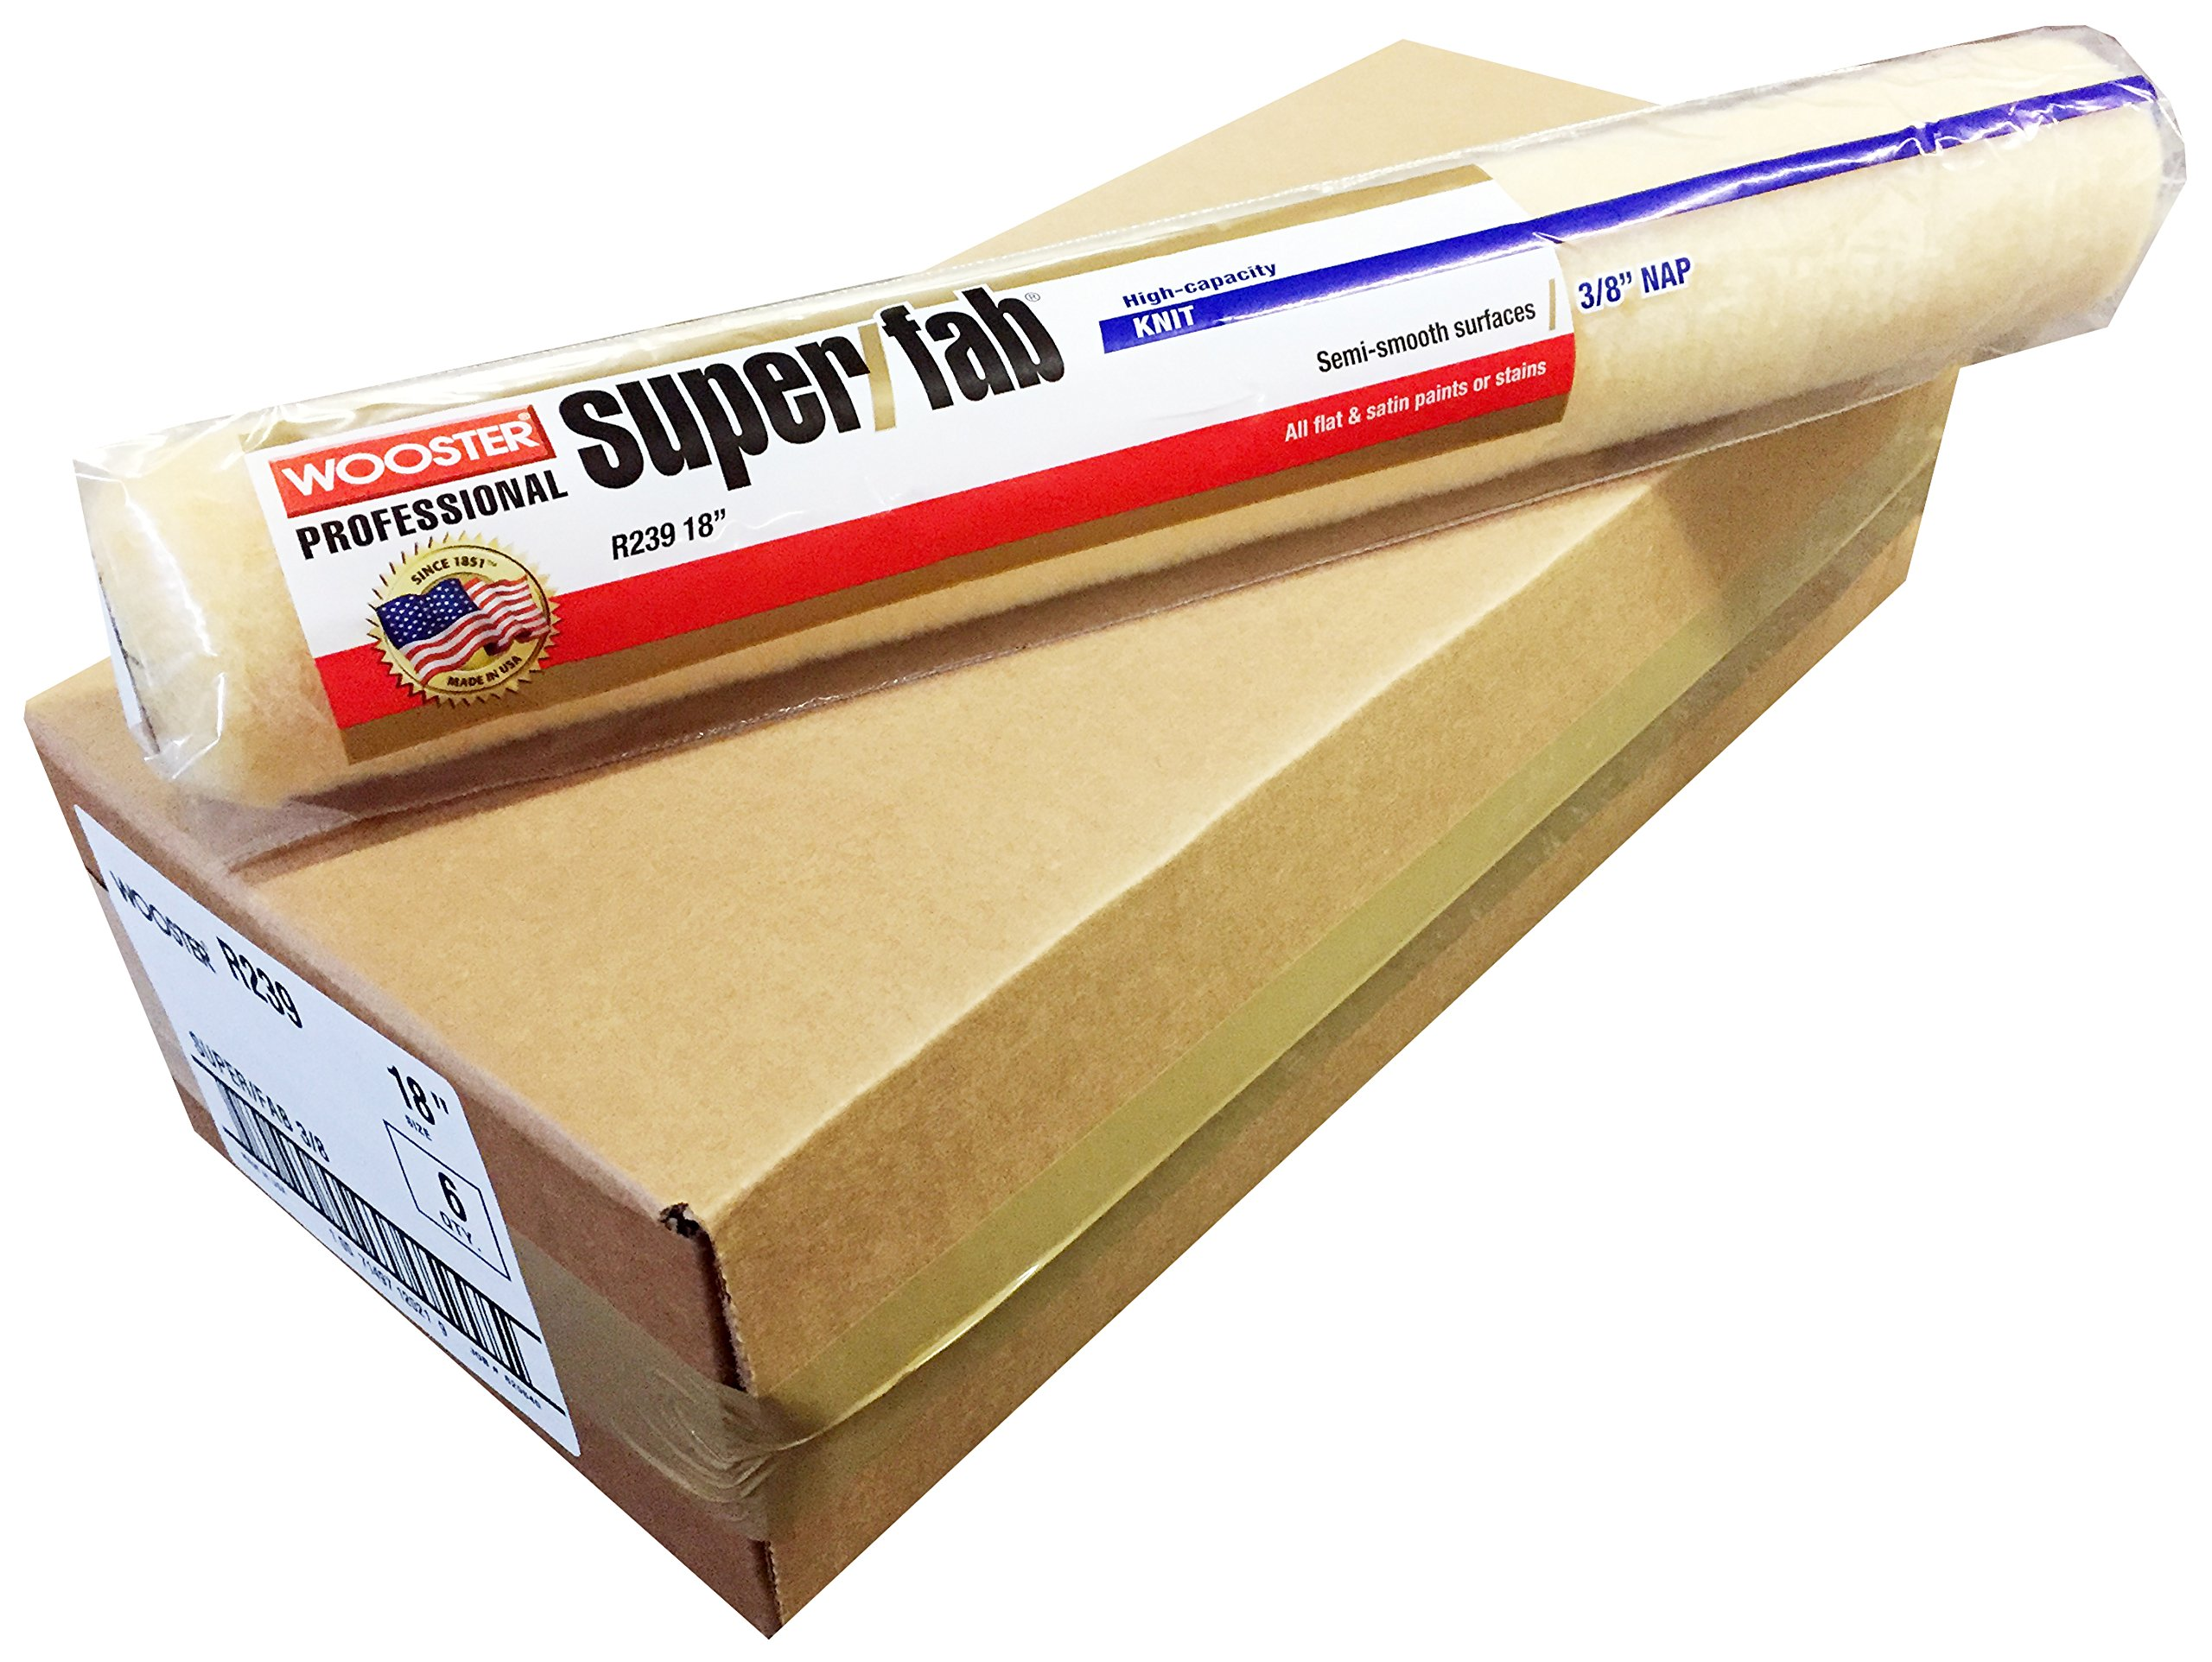 Wooster Brush R239-18 Super/Fab 3/8'' Nap Roller Cover - Pack of 6